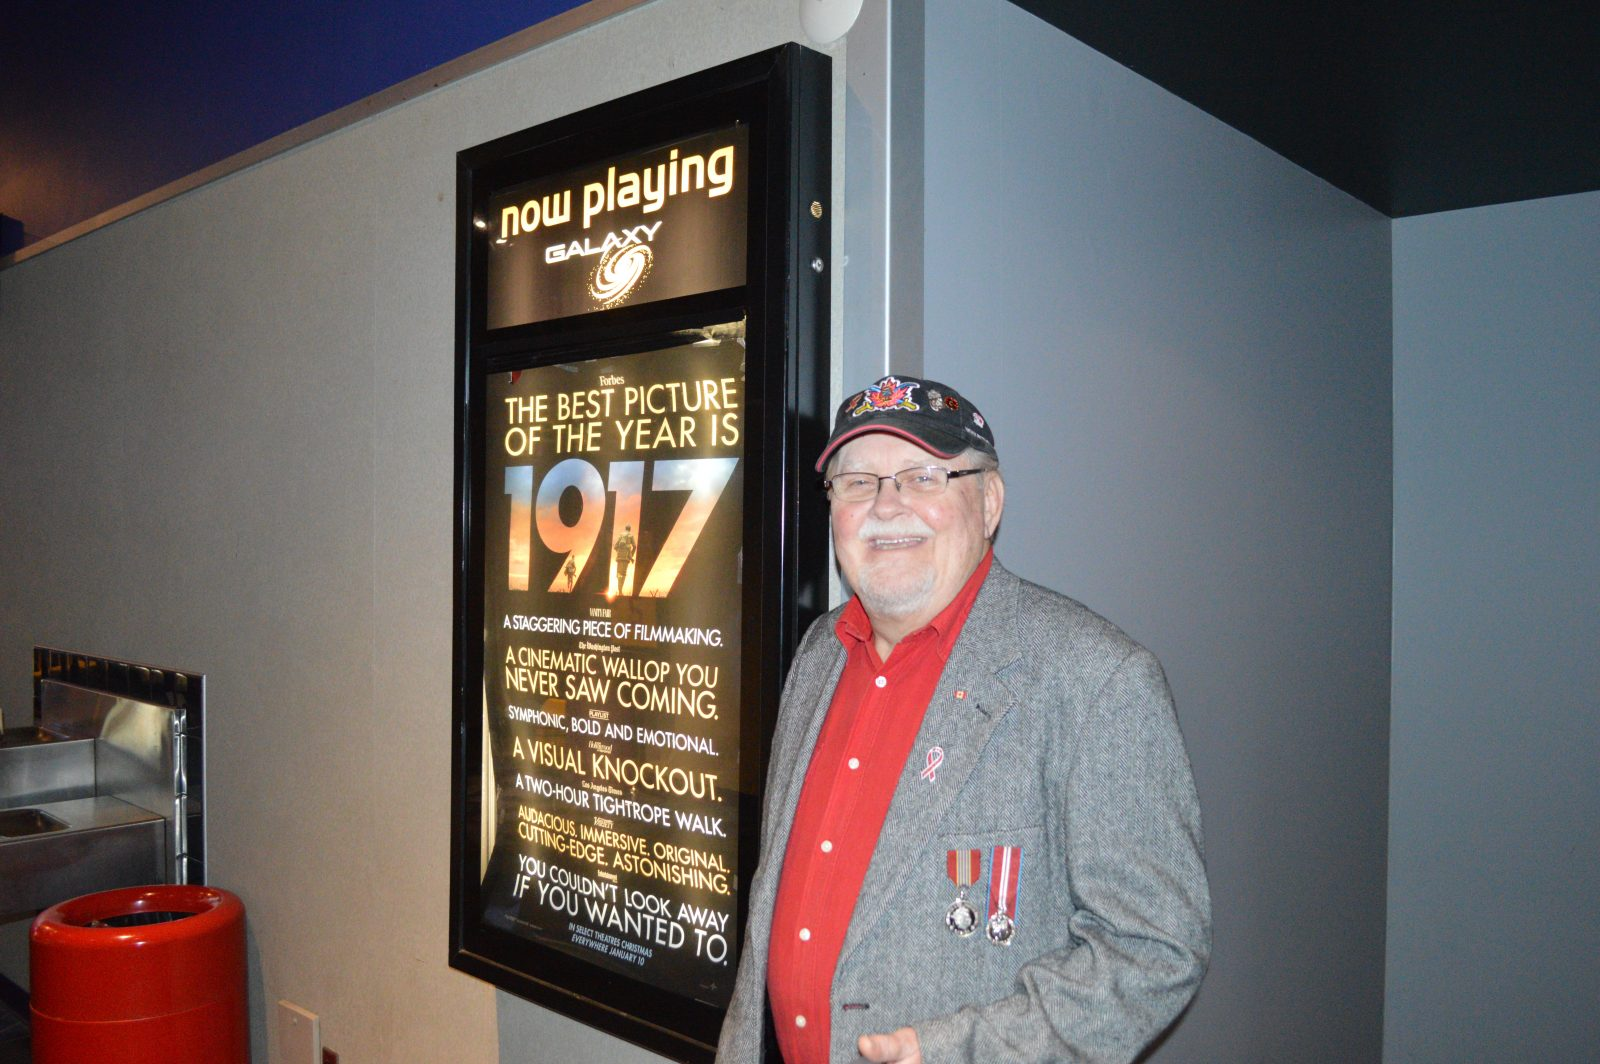 Remembering those who served at 1917 premiere